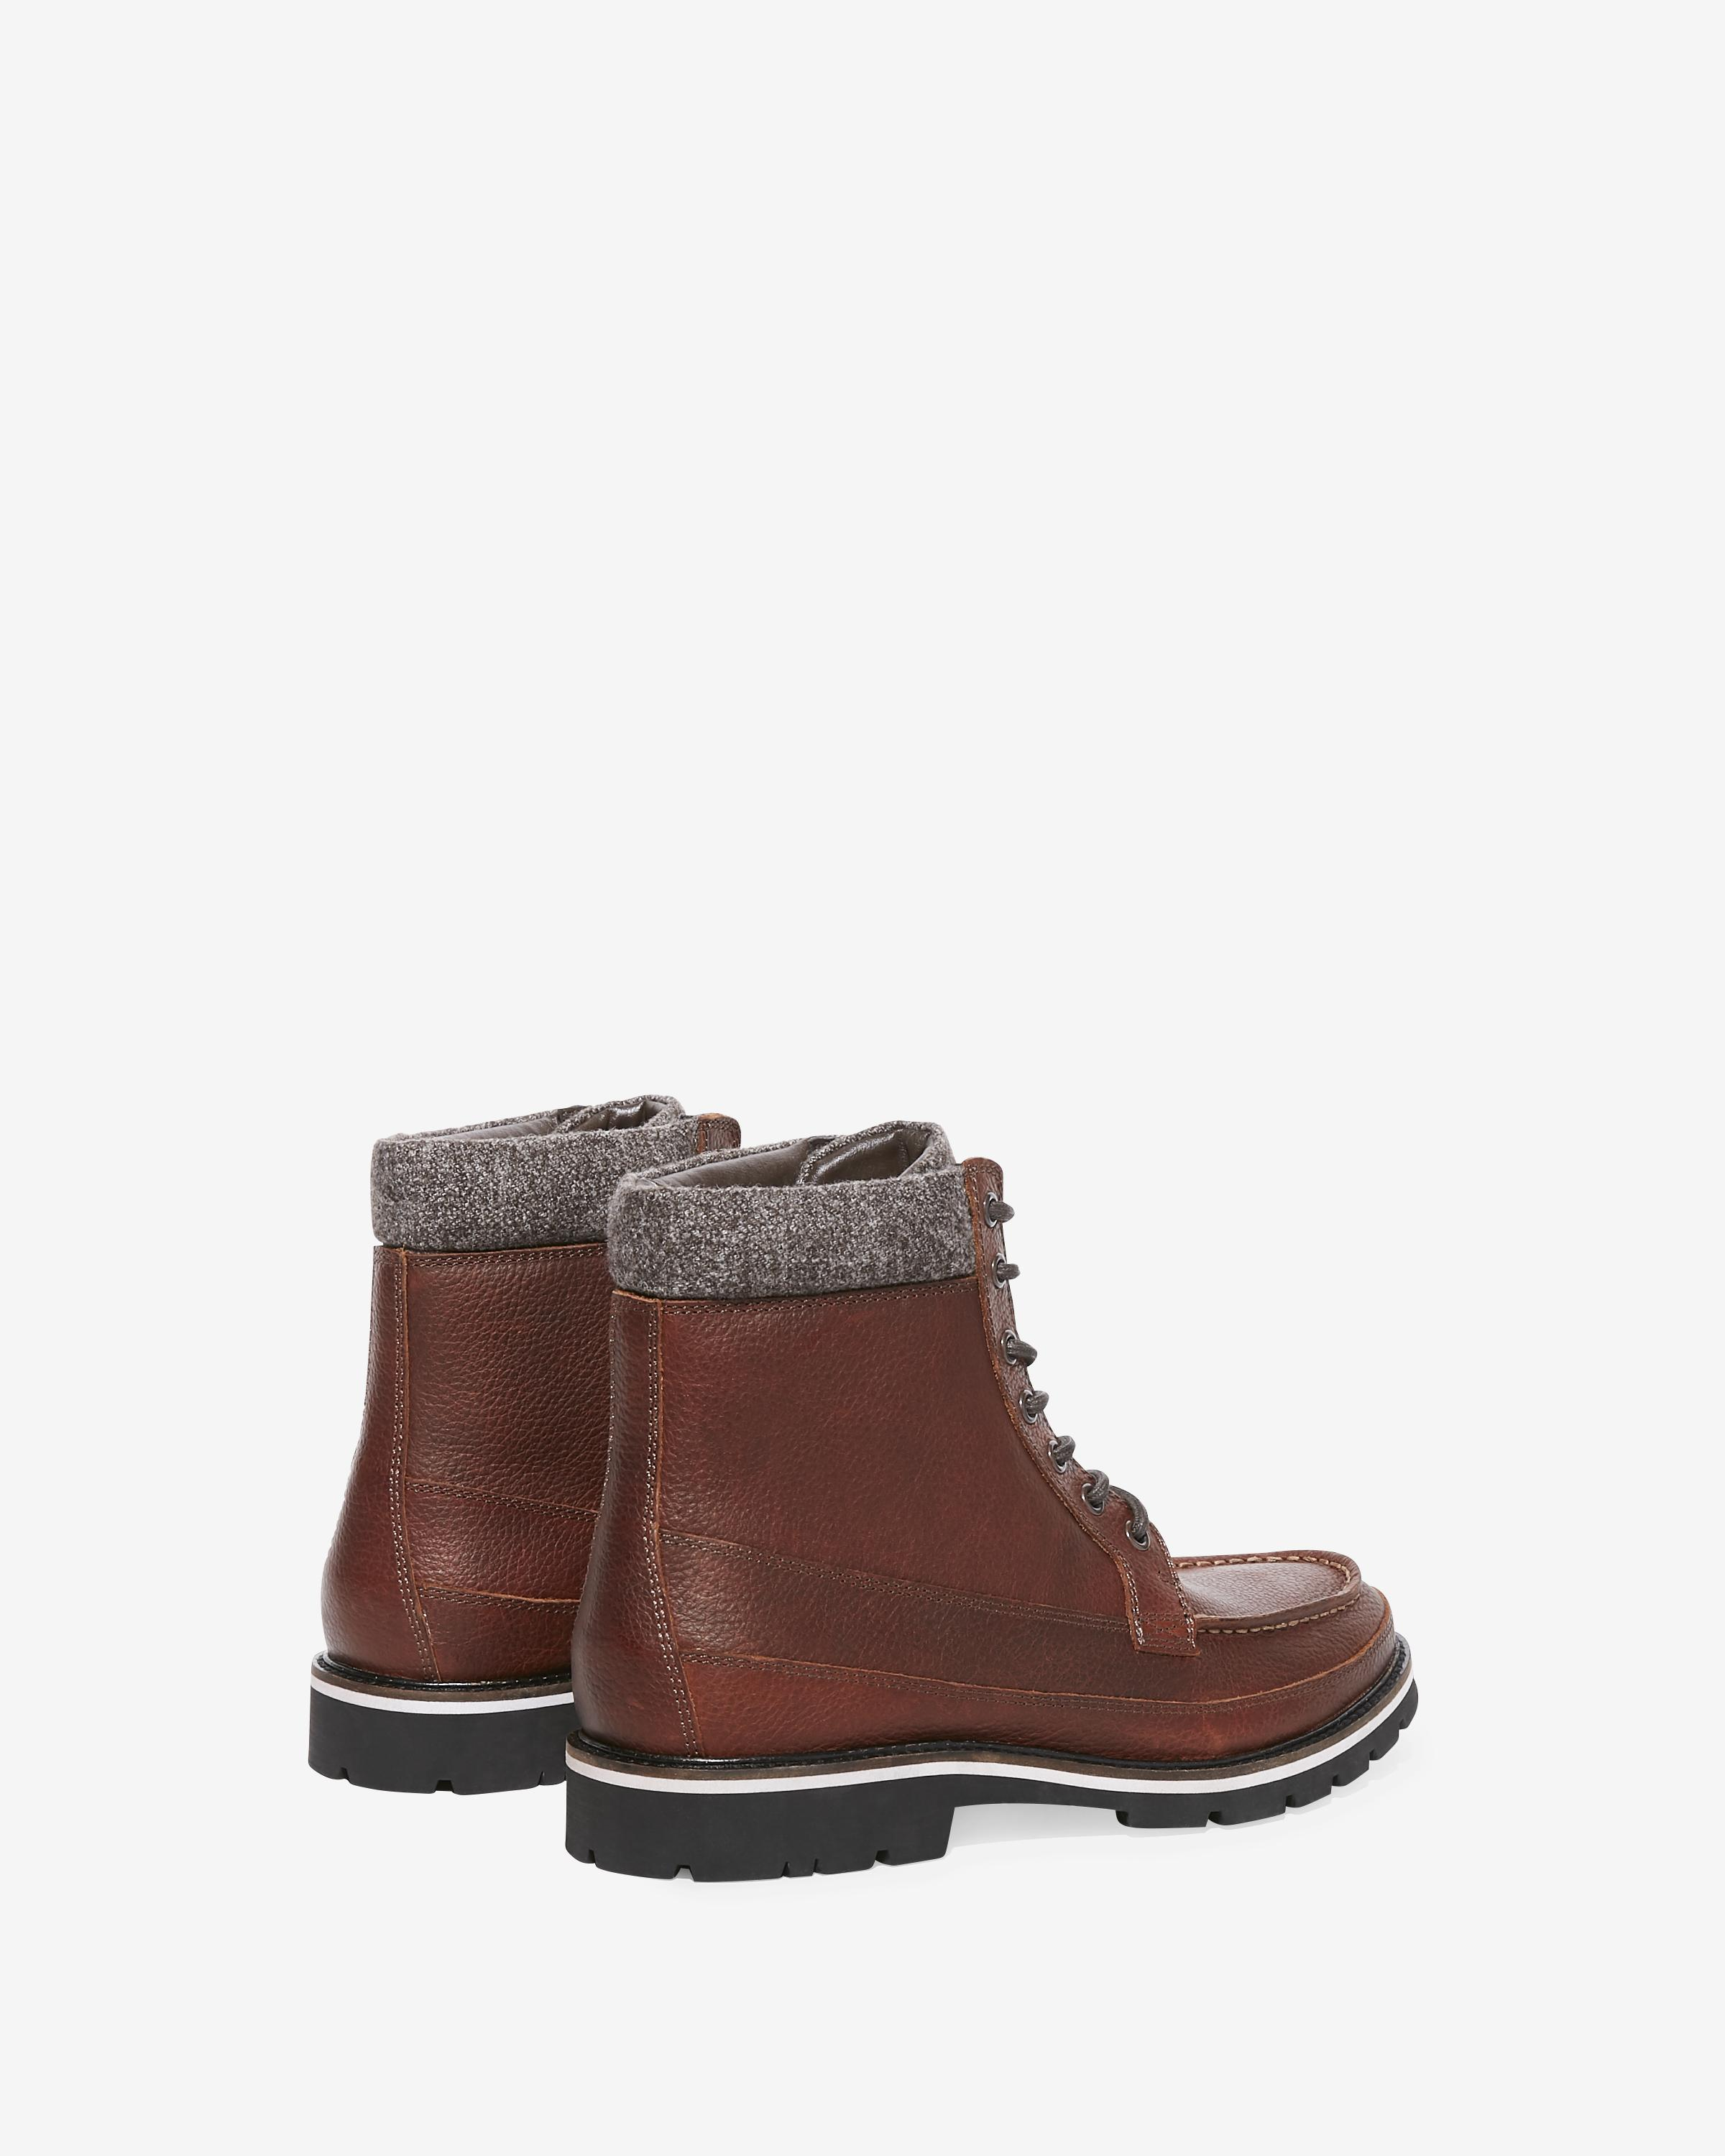 d373dbe6c73 Express Wool Cuff Lace-up Boots Brown in Brown for Men - Lyst